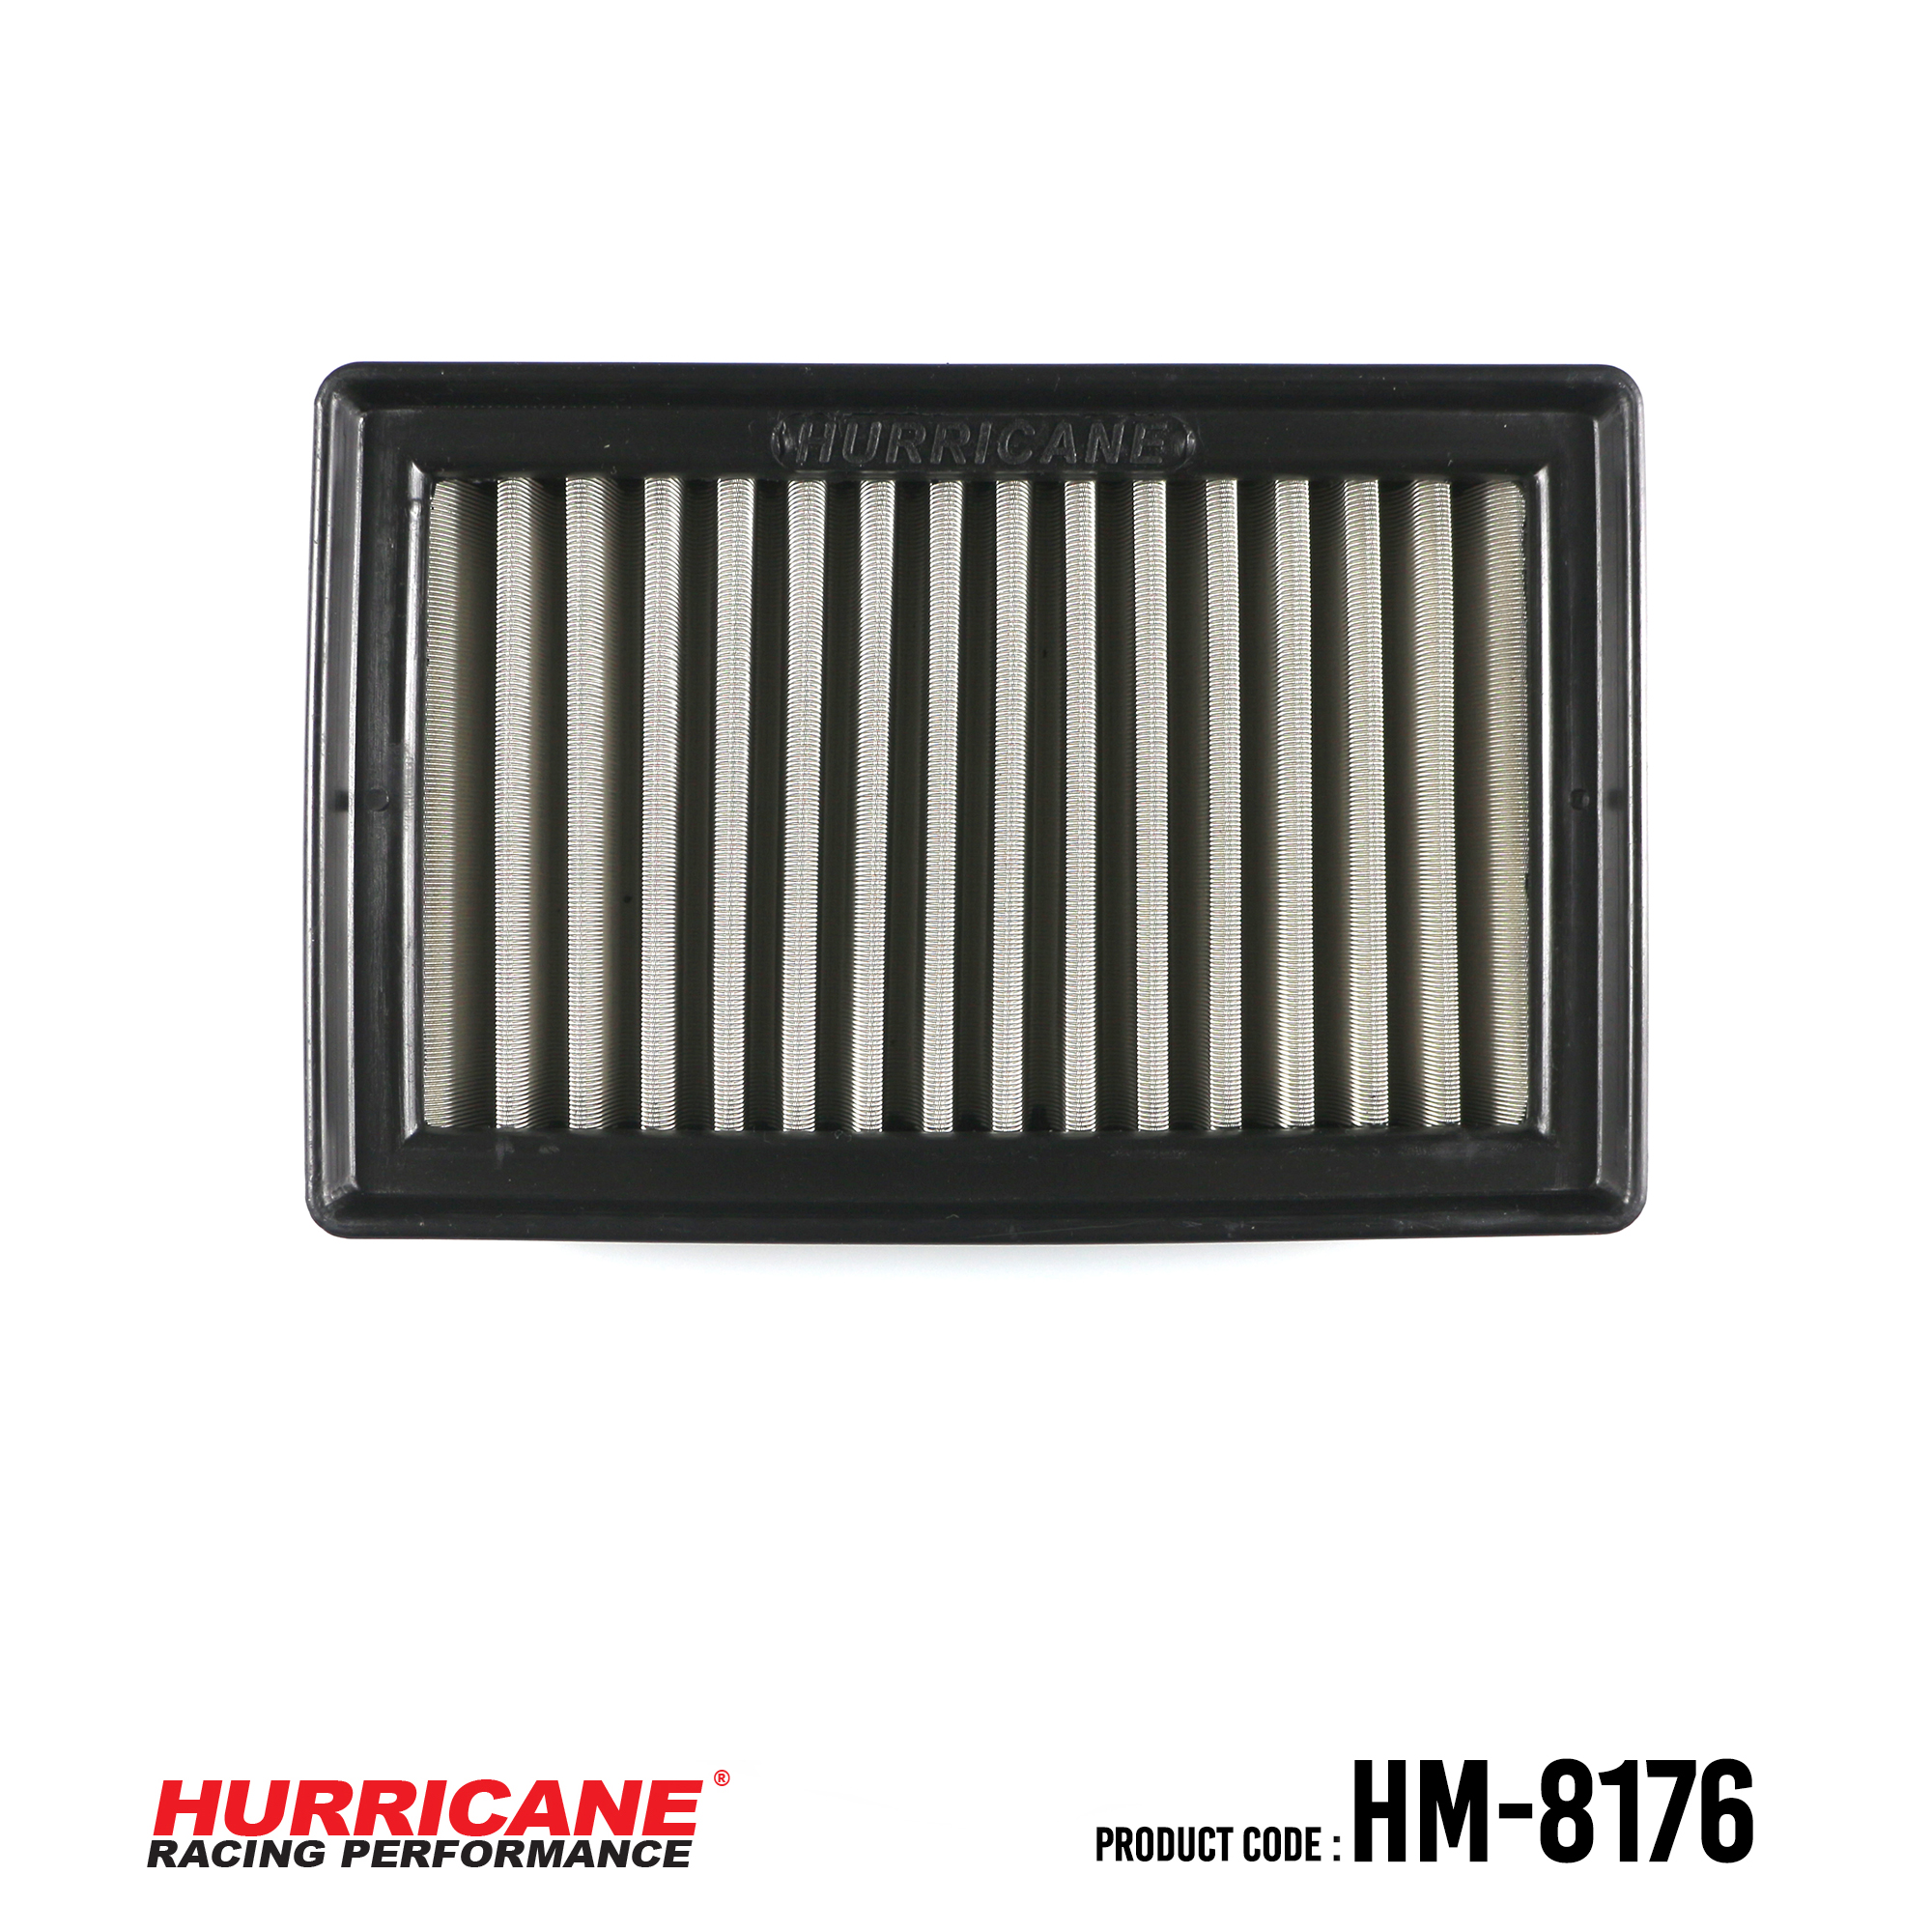 HURRICANE STAINLESS STEEL AIR FILTER FOR HM-8176 BMW